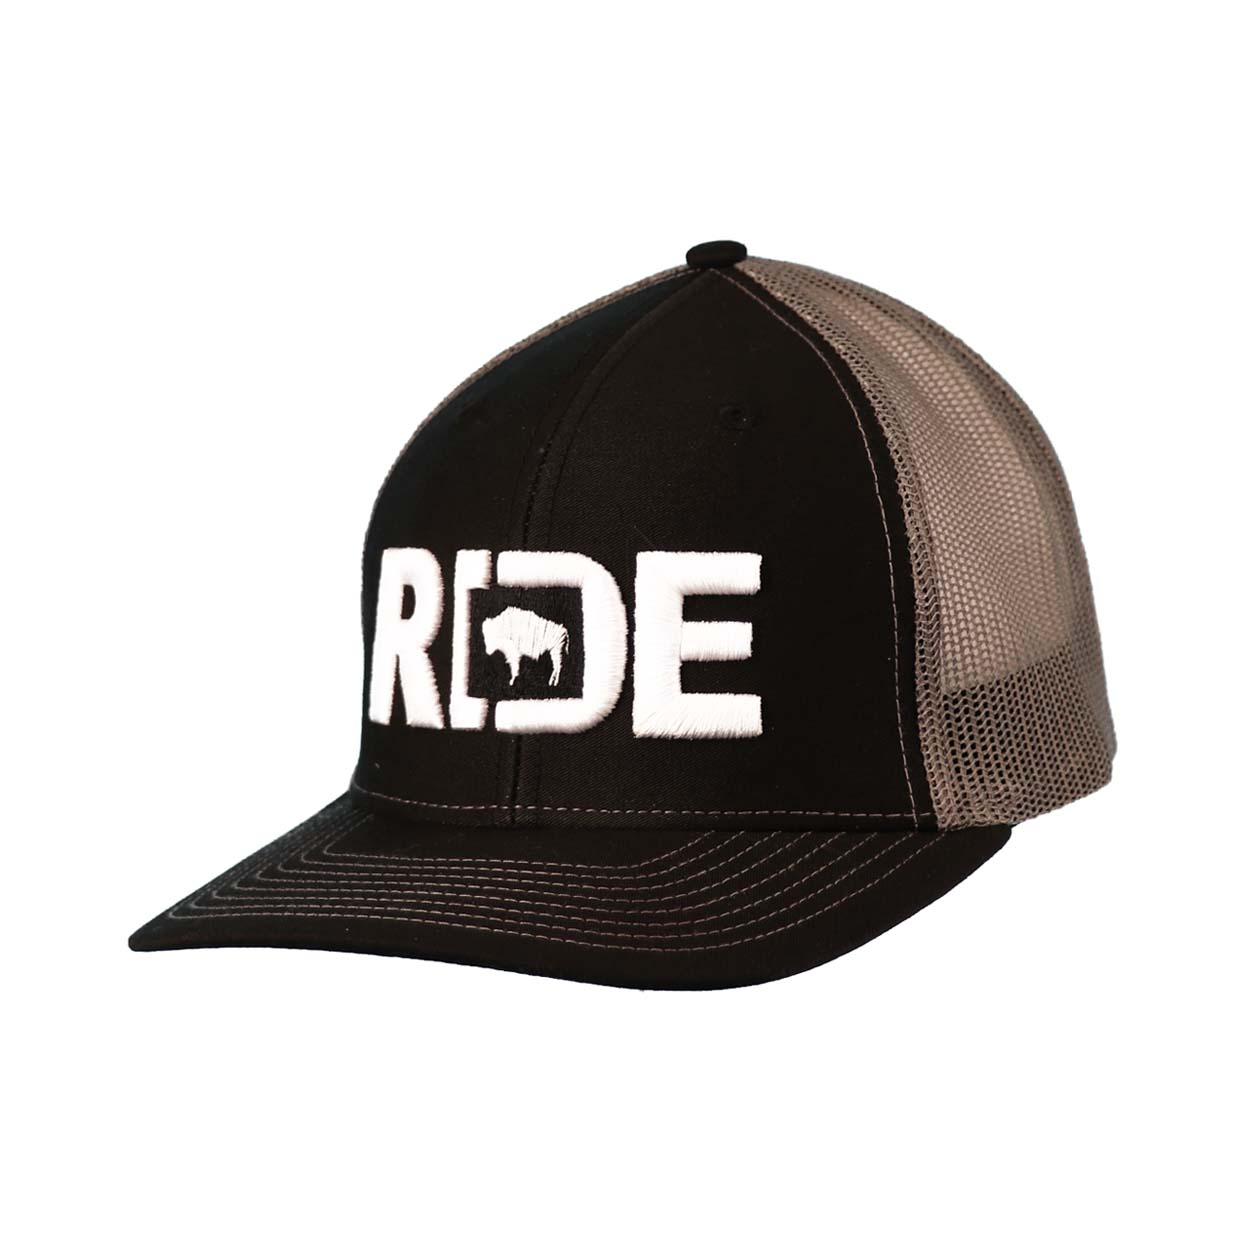 Ride Wyoming Classic Embroidered Snapback Trucker Hat Black/White